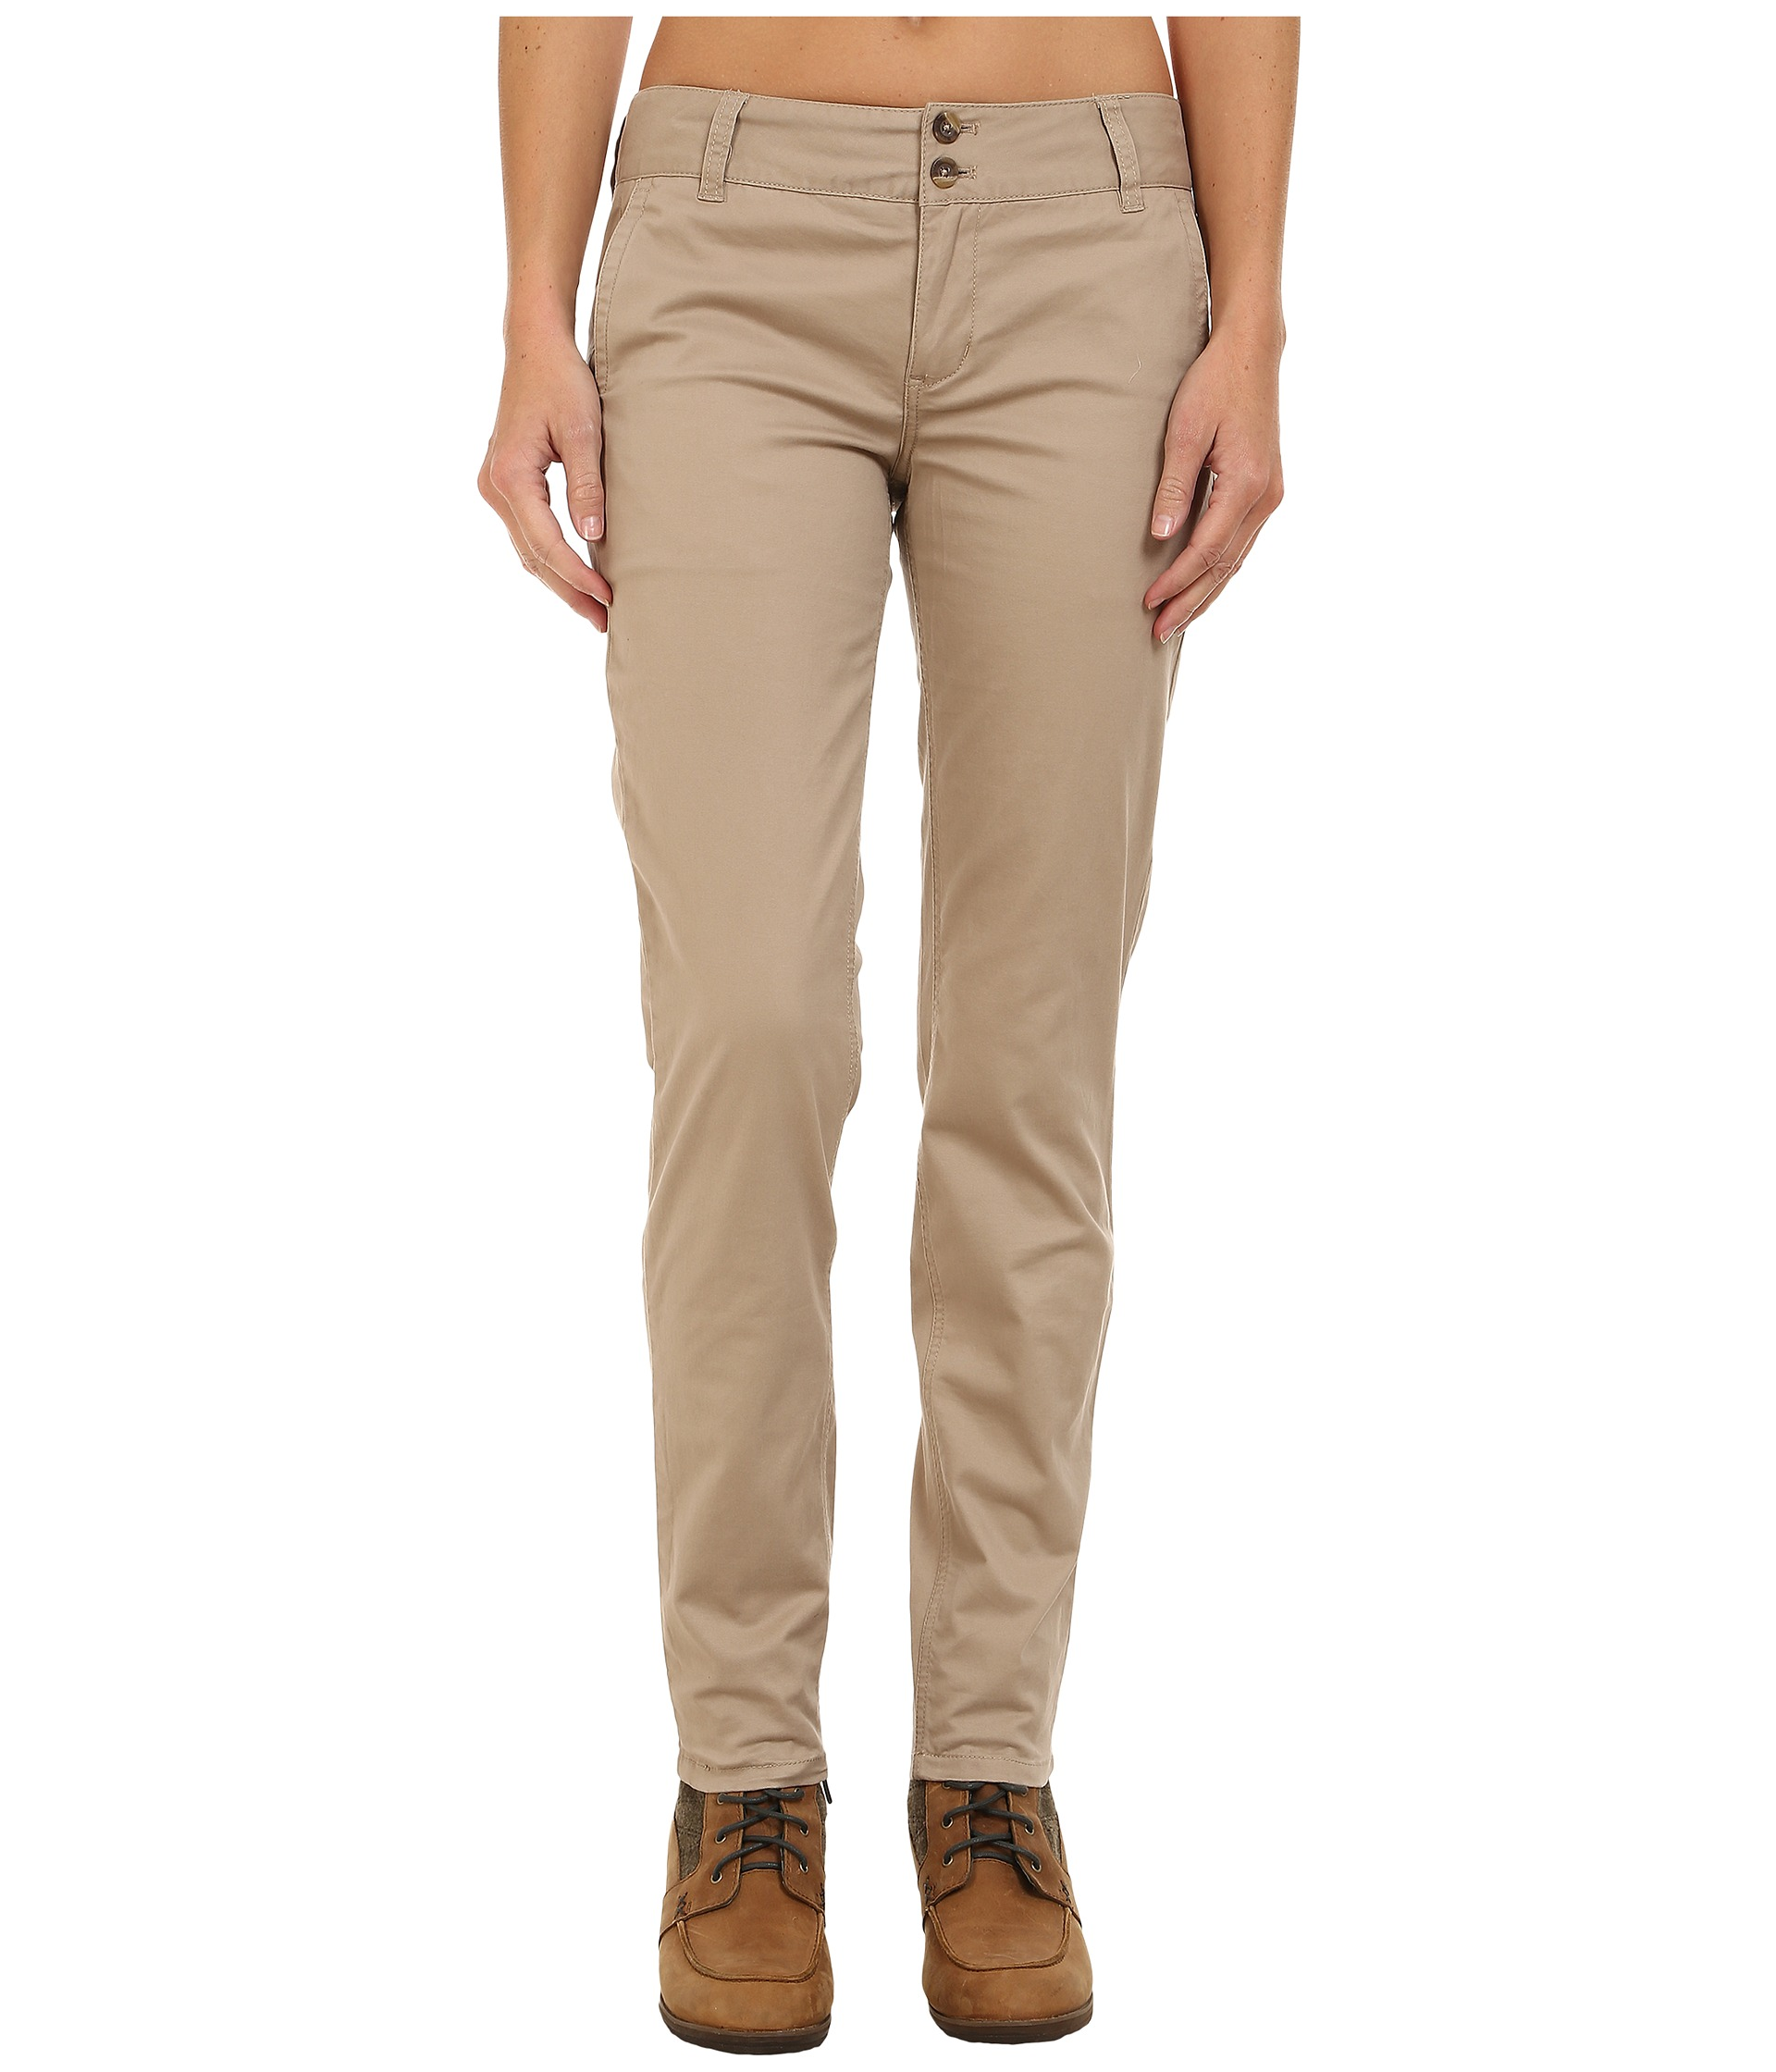 Product - DDI Premium Navy Juniors Skinny Pants - Size 5 Case of 6. Product Image. Price $ Product Title. DDI Premium Navy Juniors Skinny Pants - Size 5 Case of 6. Product - JOU JOU Womens Brown Textured FAUX SUEDE Skinny Pants Juniors Size: 3. Product Image. Price $ .